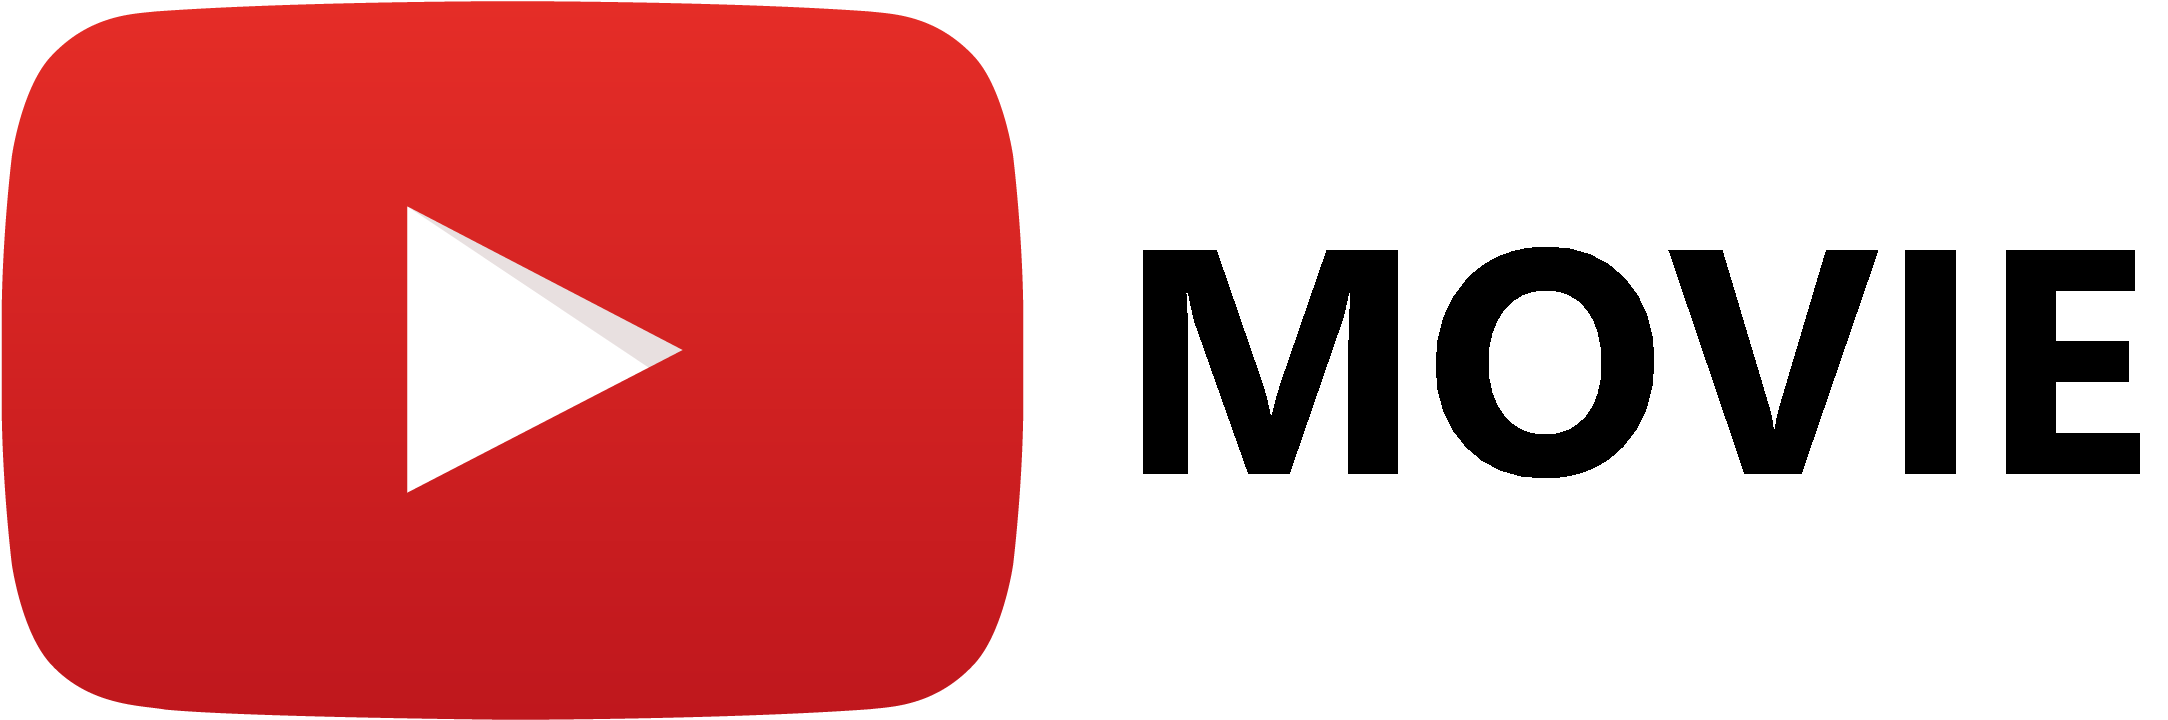 YouTube-icon-full_color 2